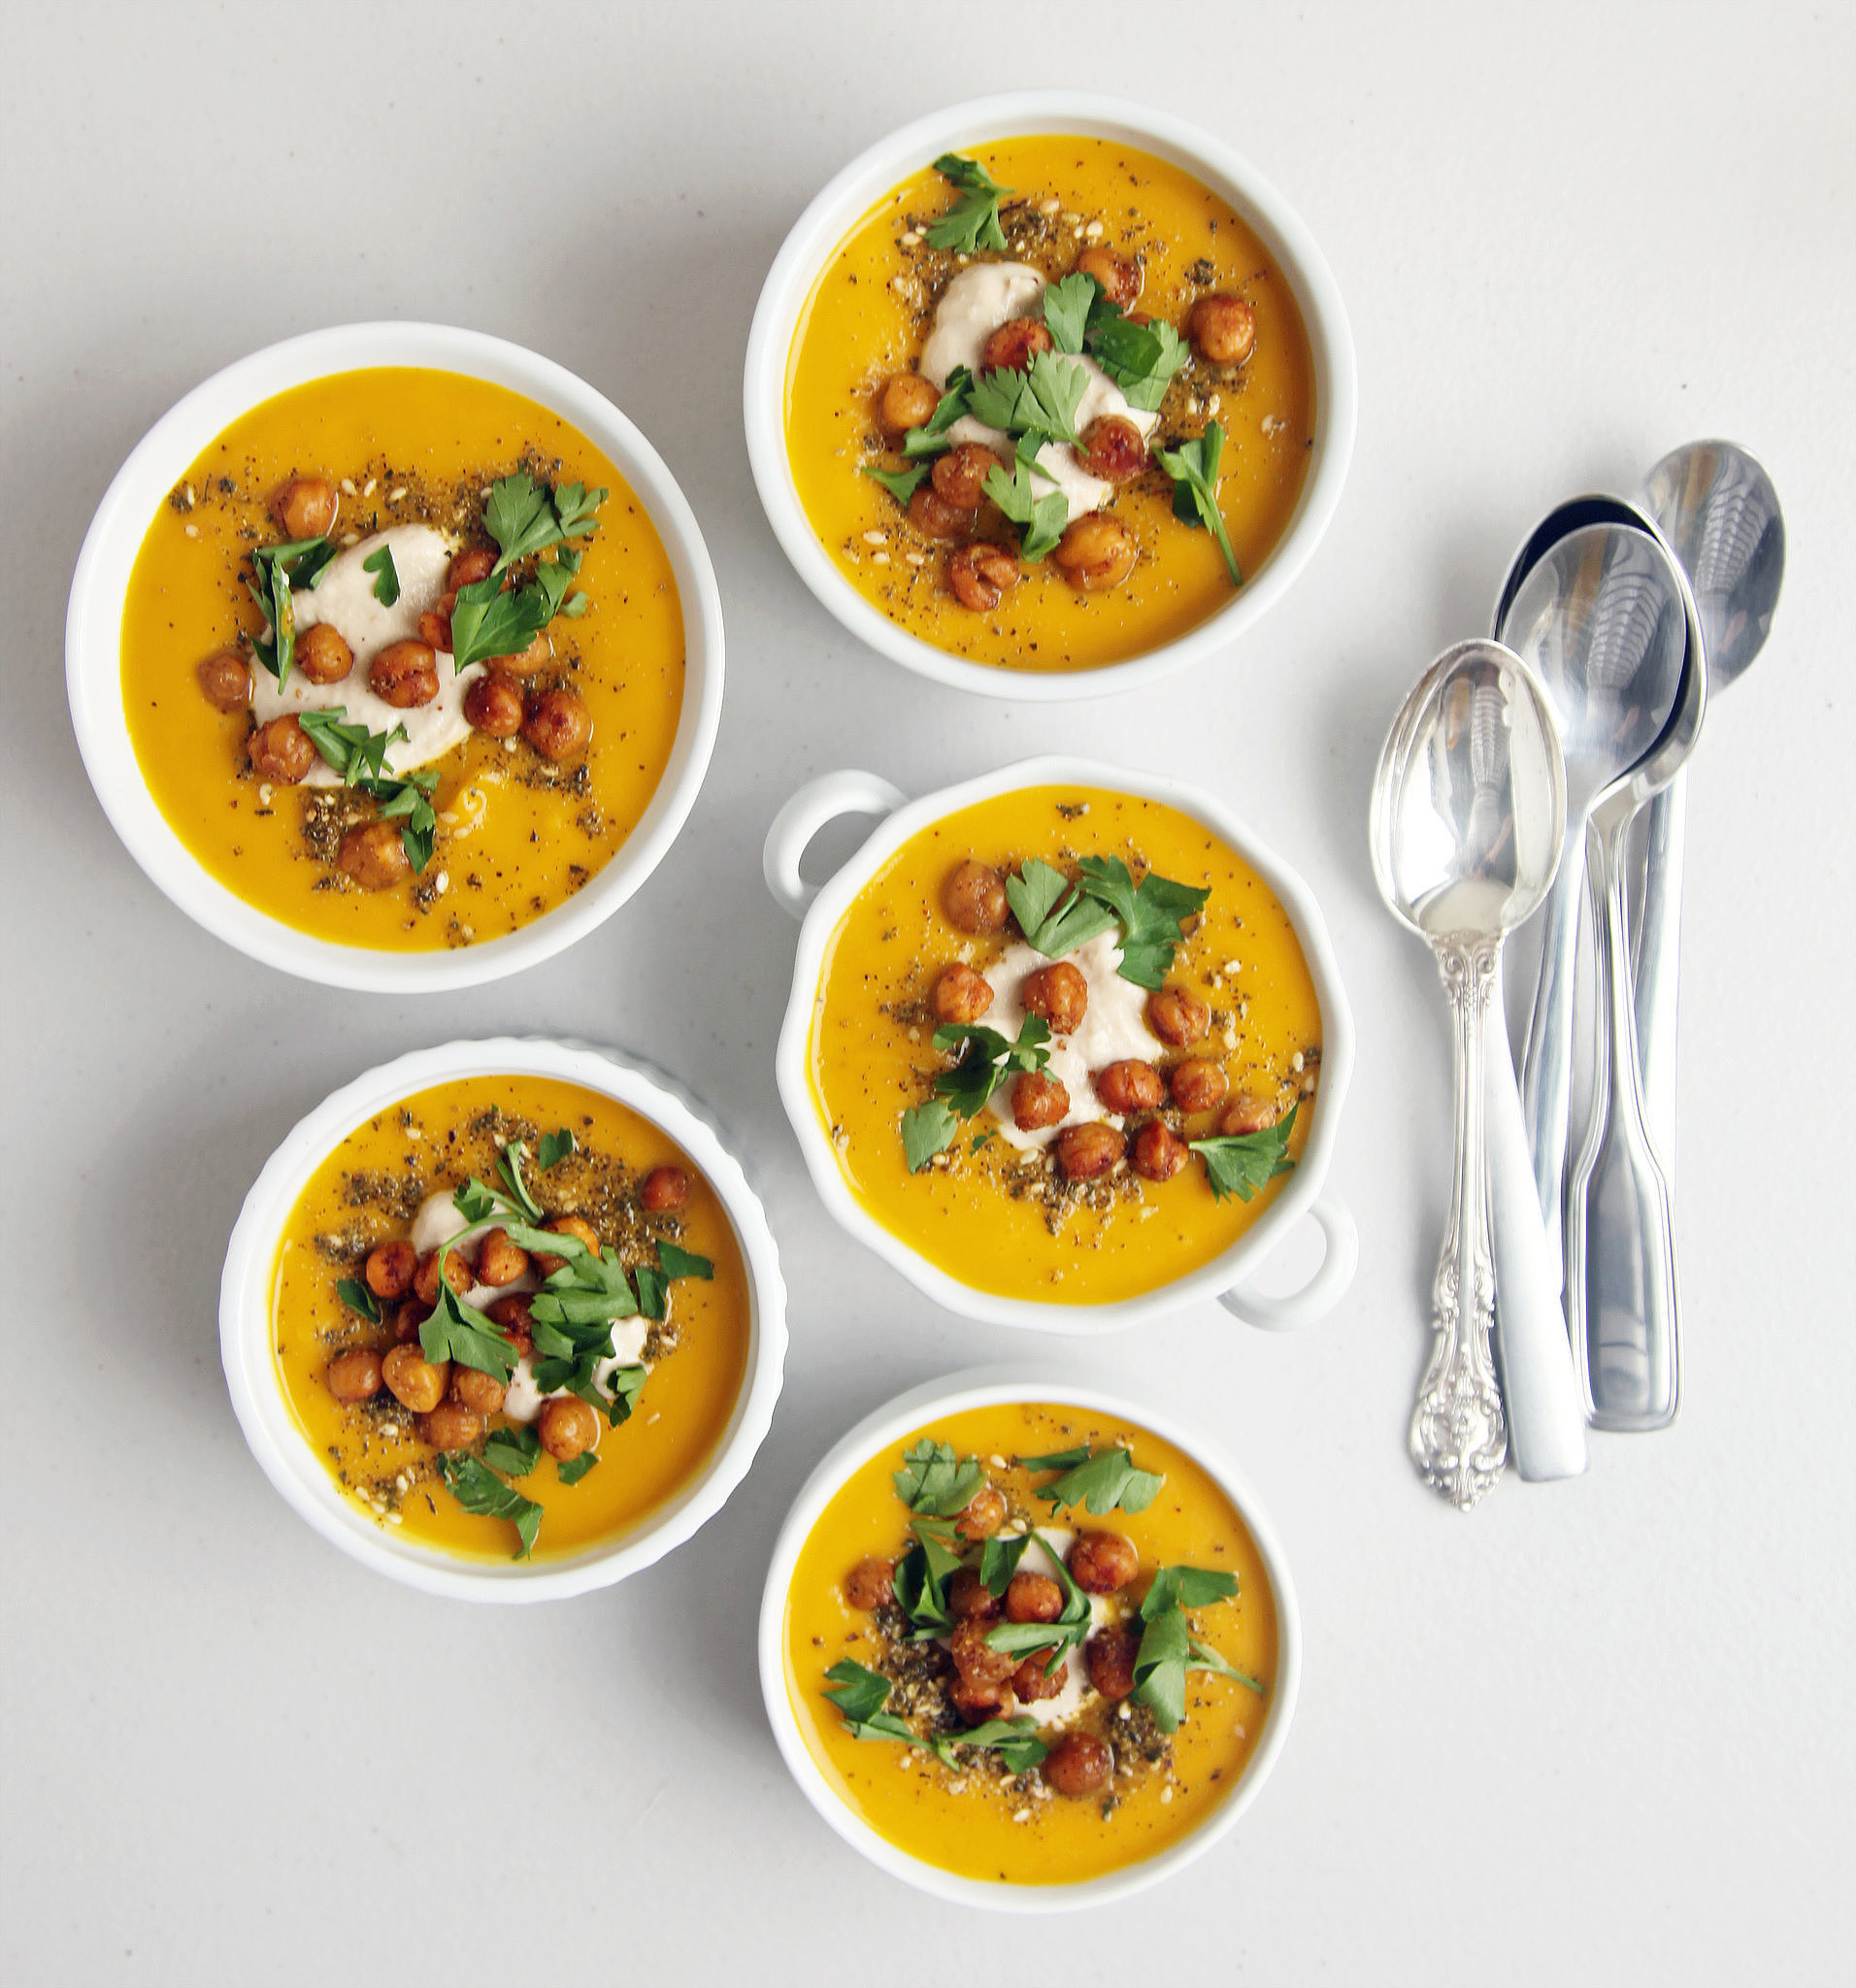 Spiced Carrot Soup With Roasted Chickpeas